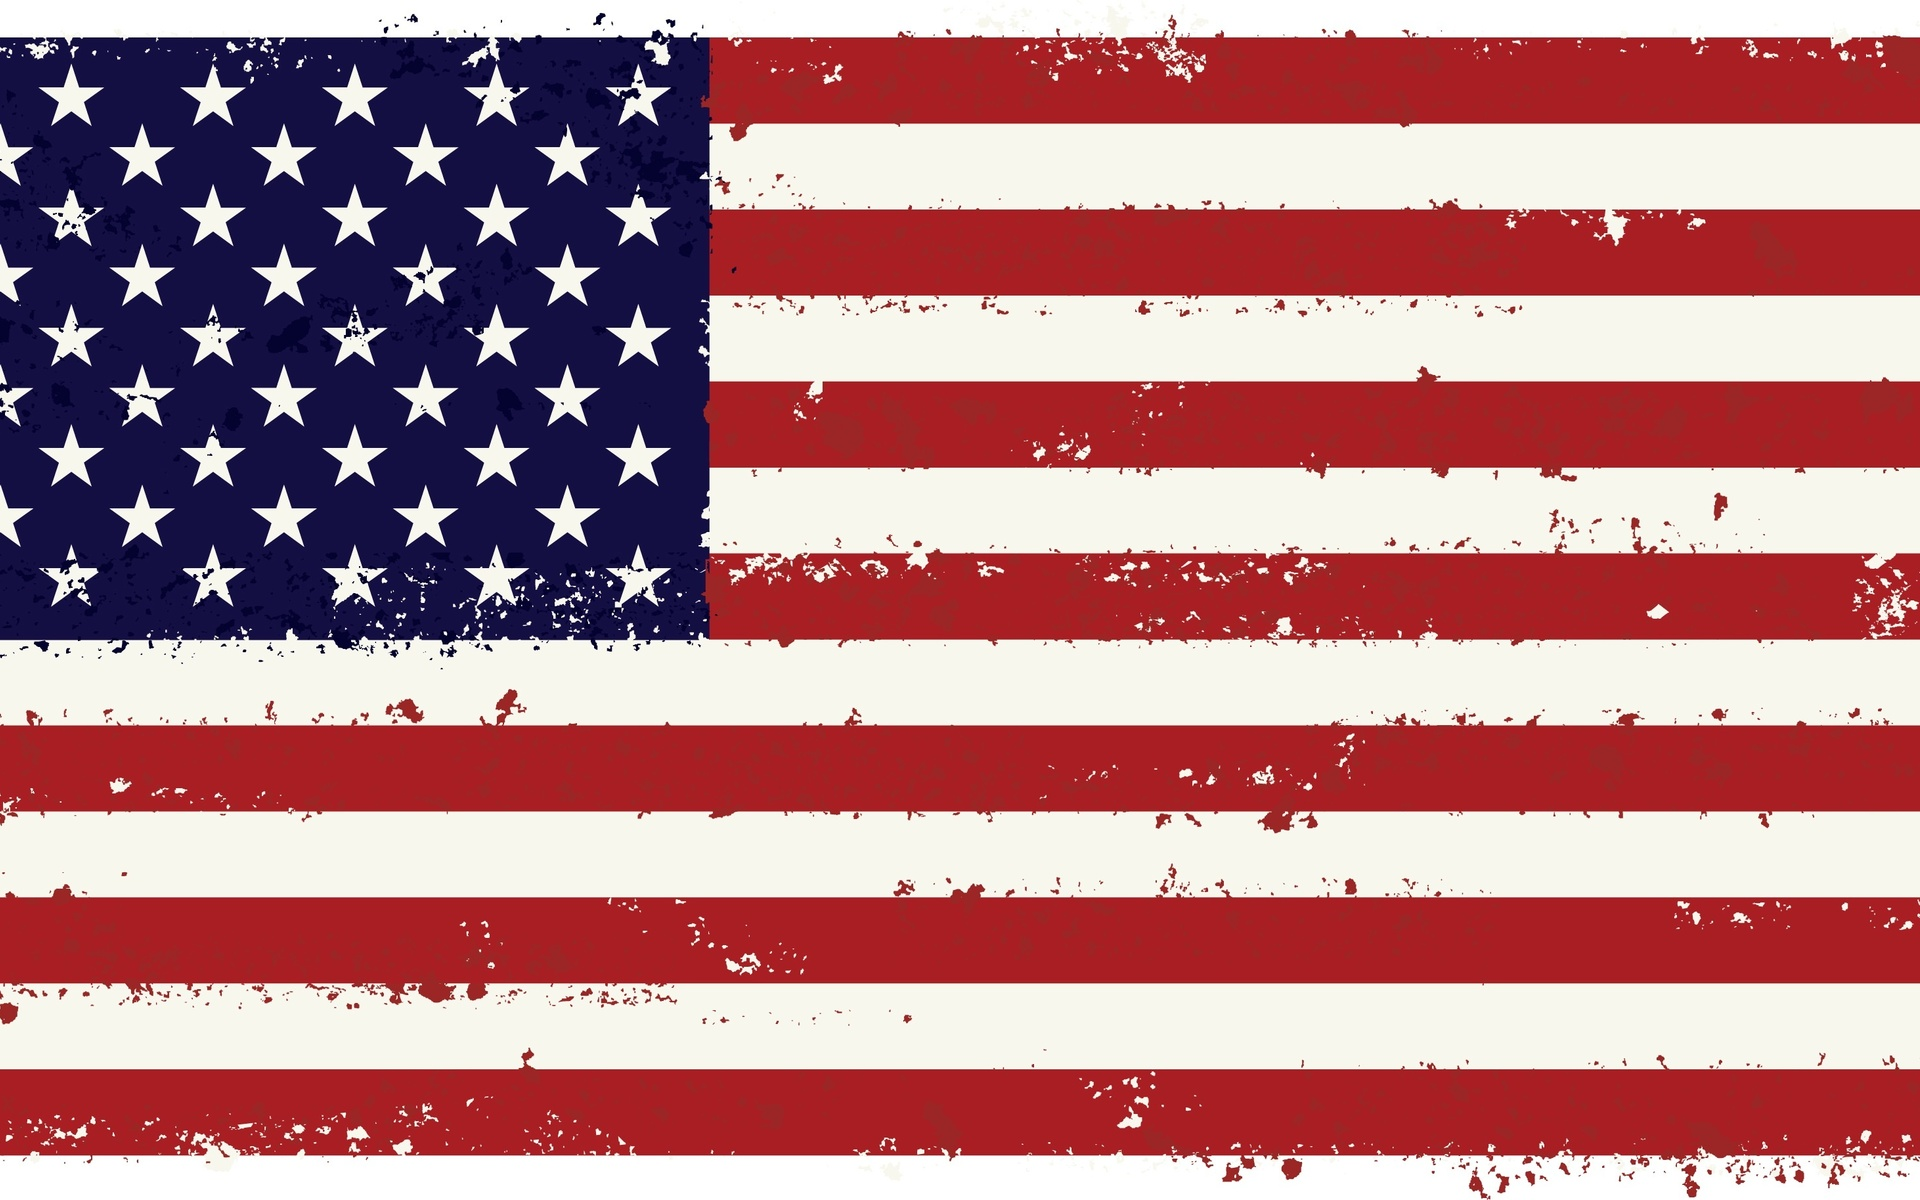 США, американский флаг, текстура флага, фон, flag background, USA